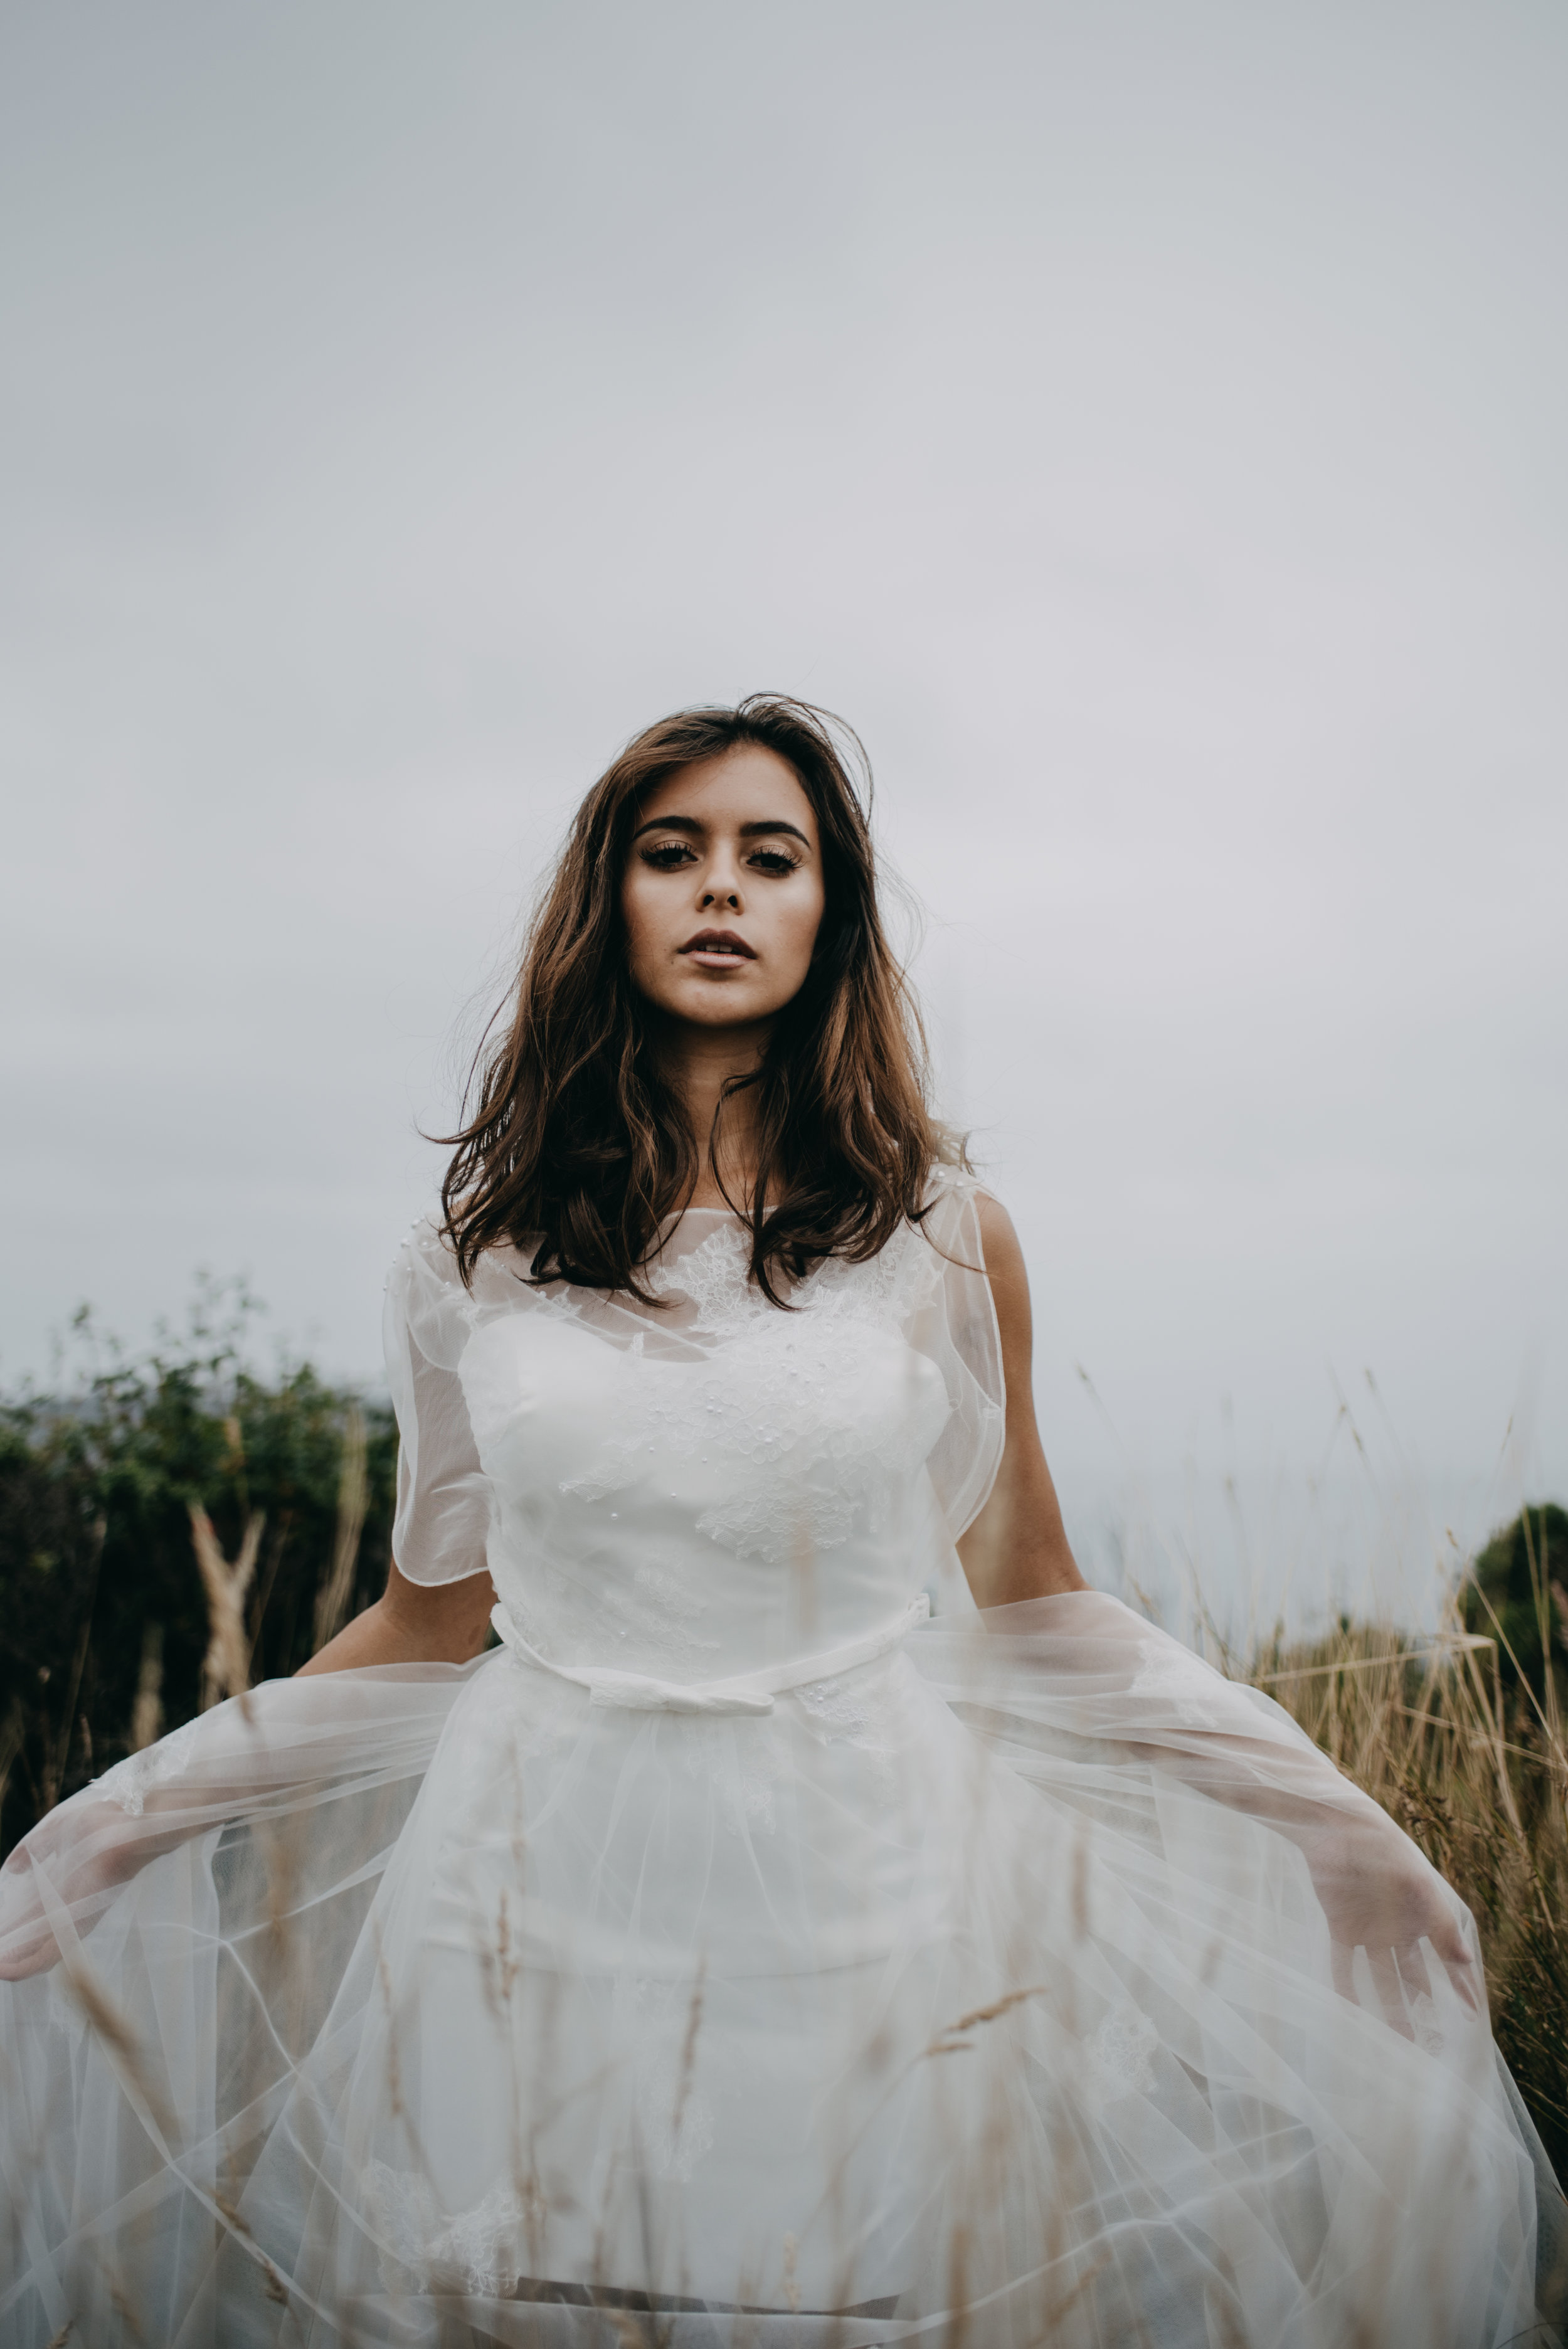 affordable wedding dress for modern bride changing the wedding industry